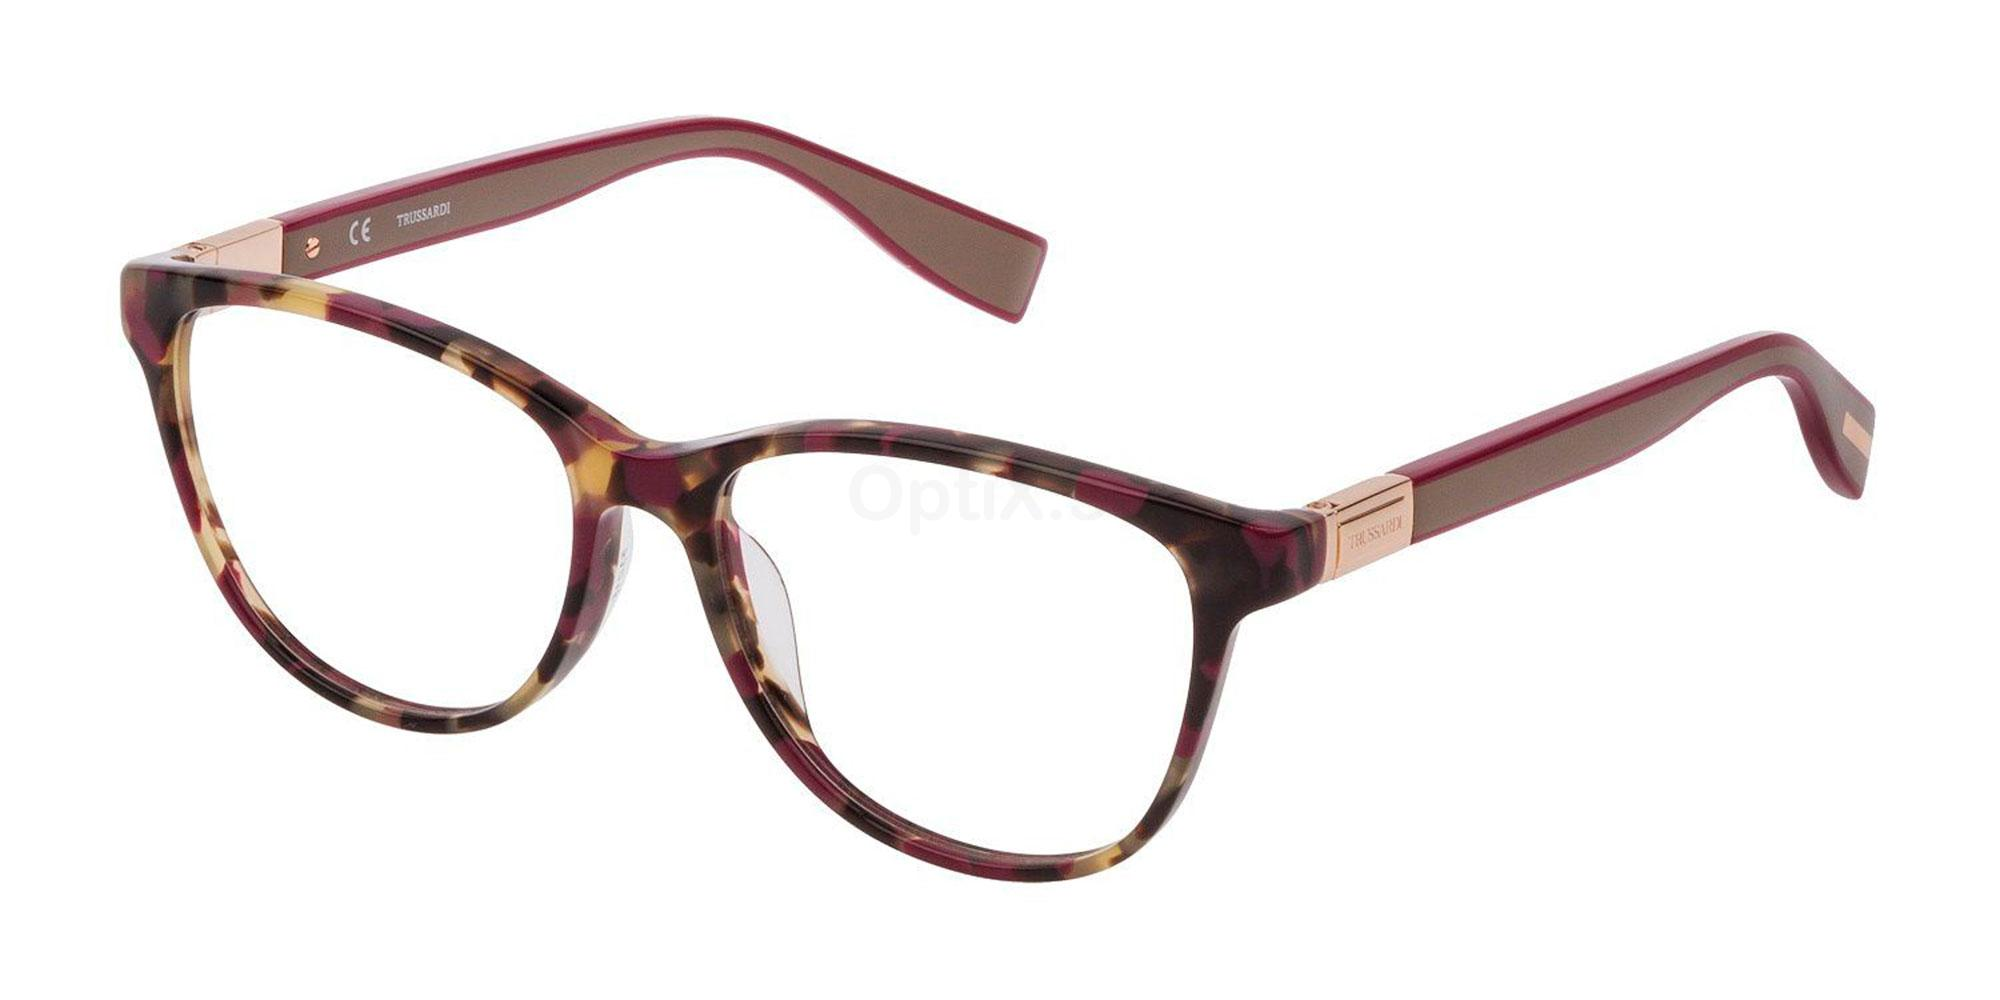 07TC VTR350 Glasses, Trussardi